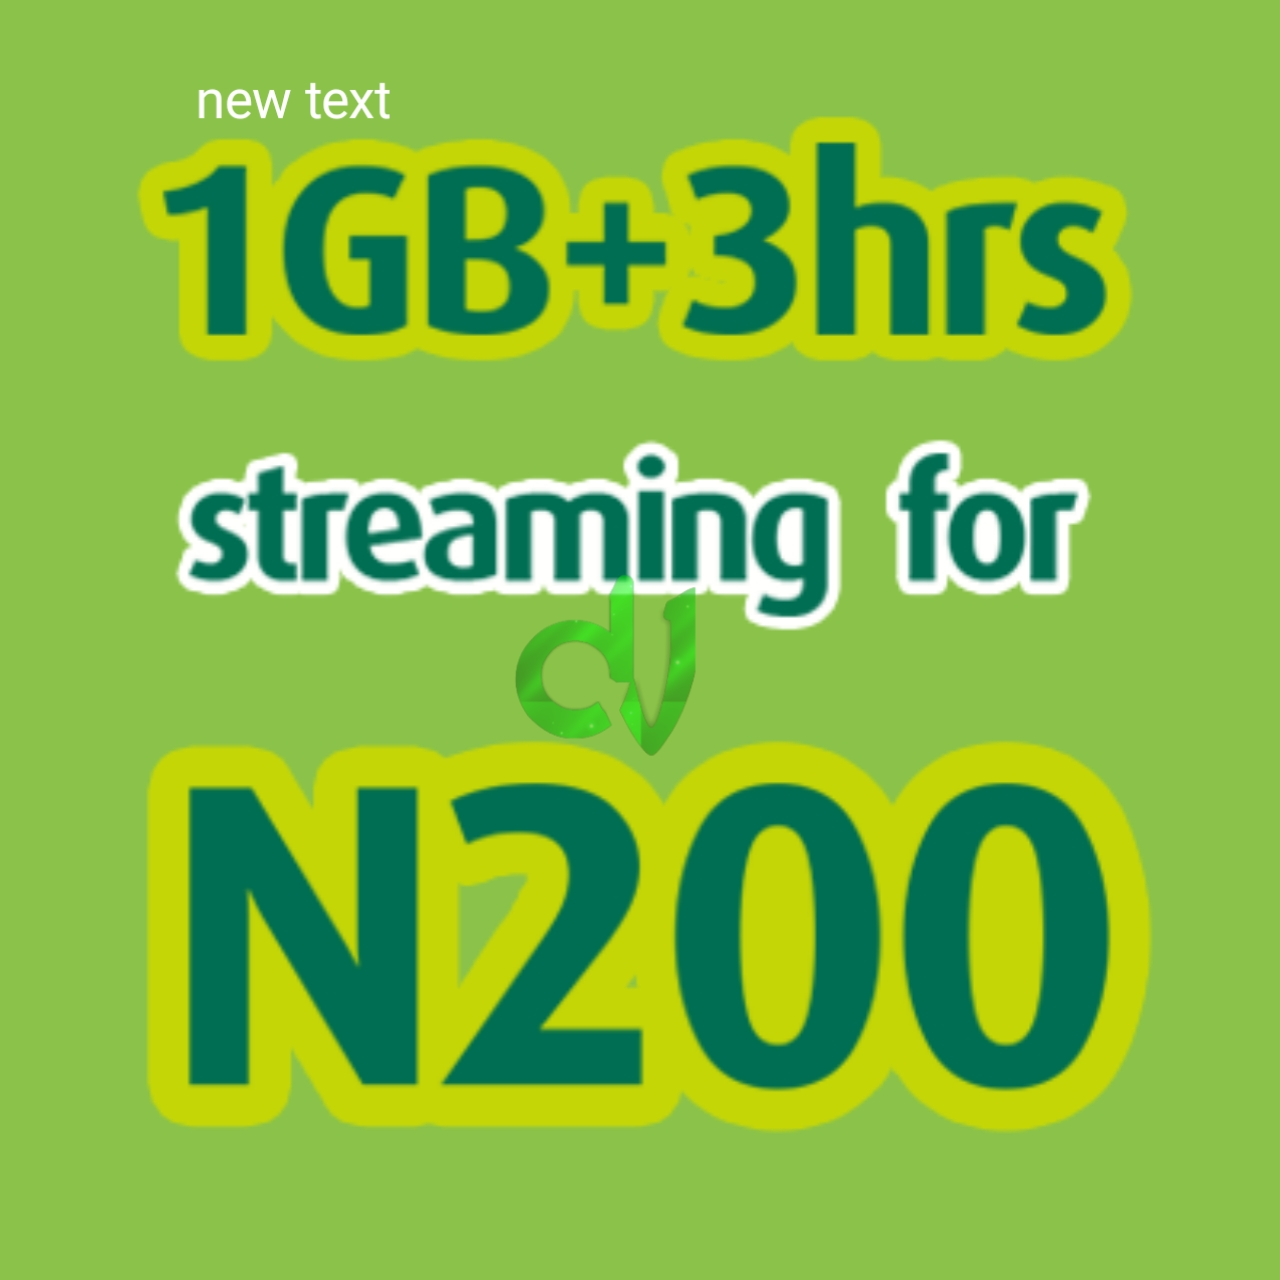 New 9mobile 1GB + 3 Hours Streaming For N200: See how